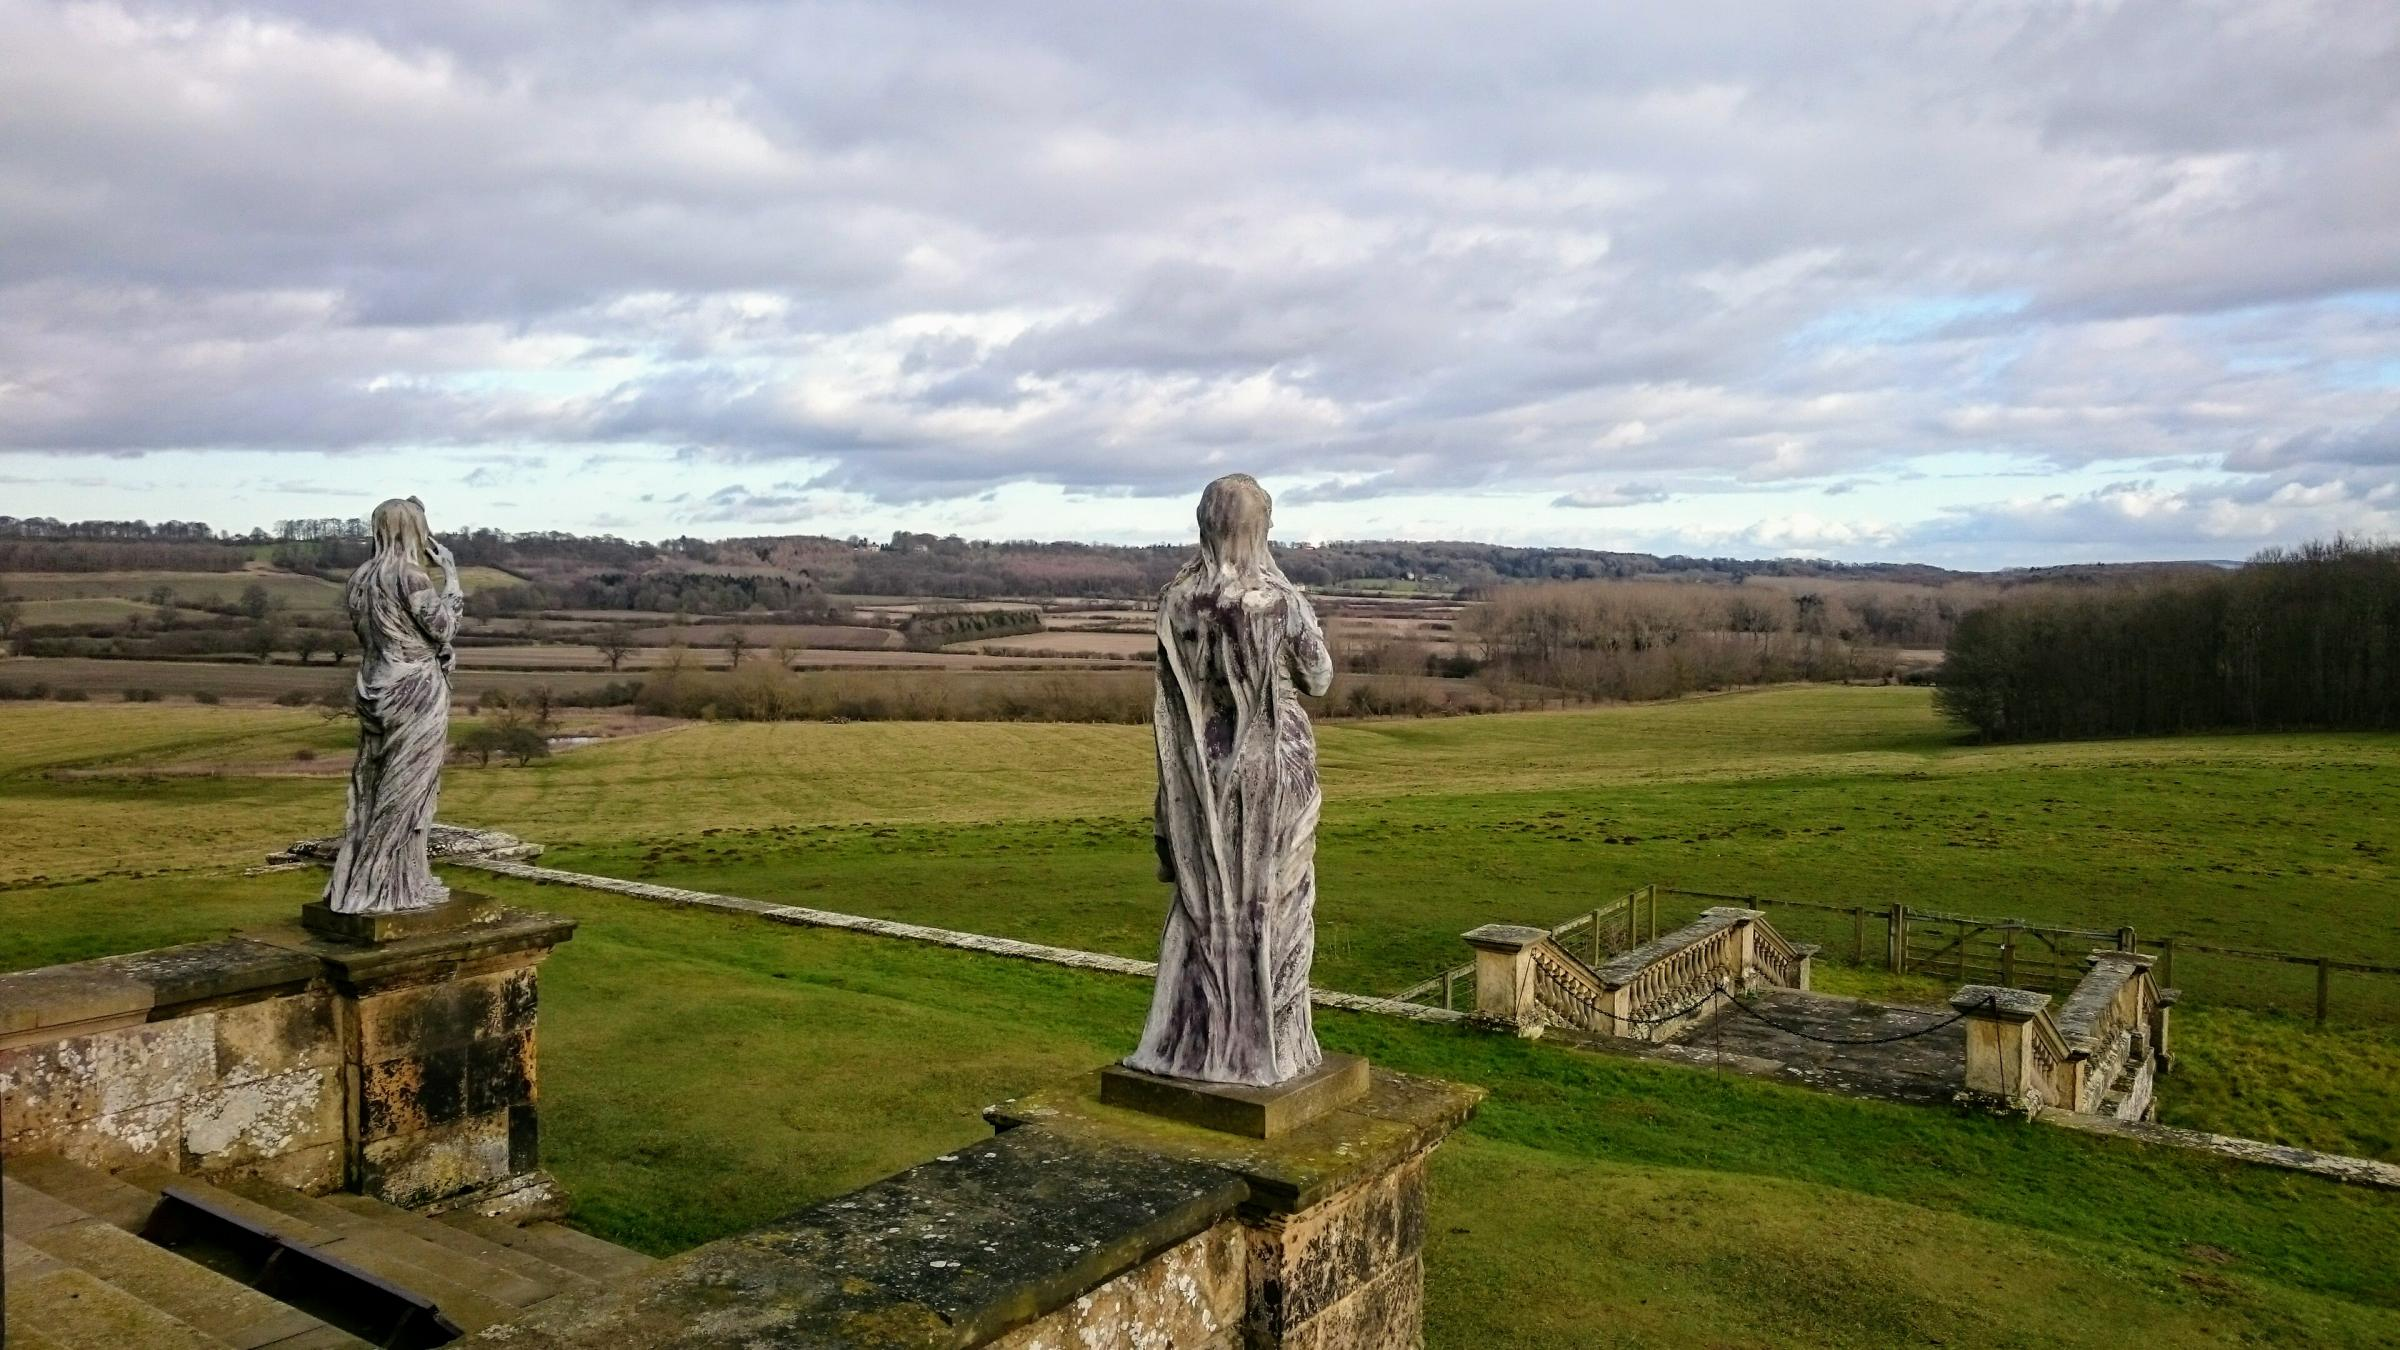 Taking time to take in the view at Castle Howard by Pete Lamb